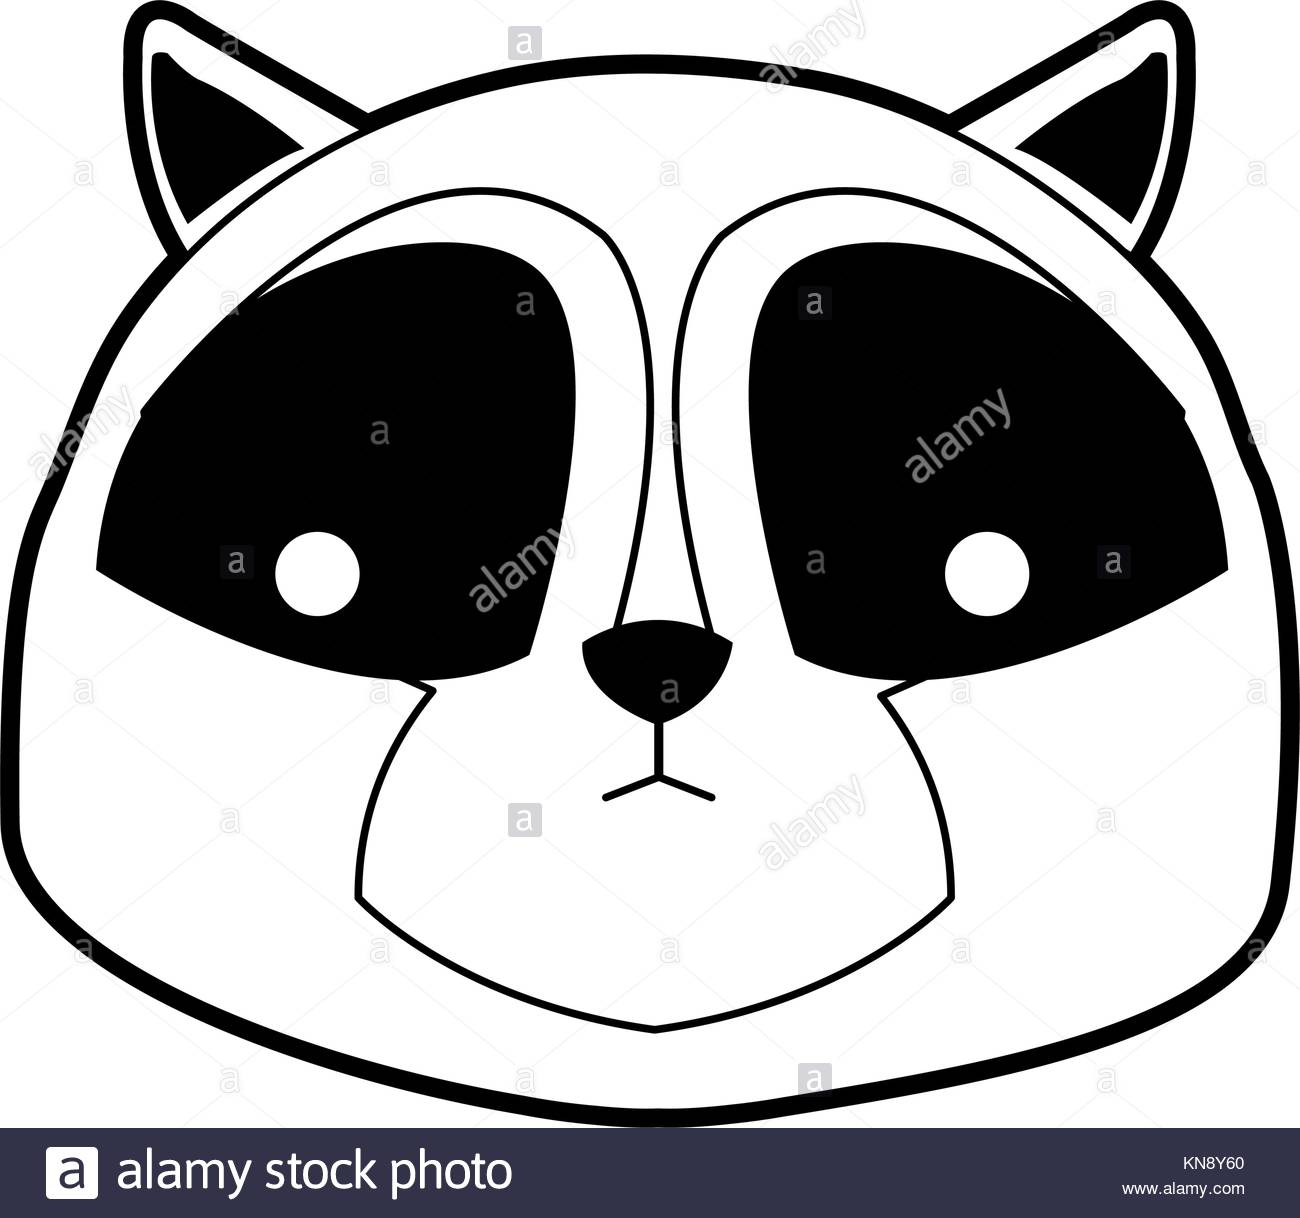 1300x1218 Raccoon Black And White Stock Photos Amp Images